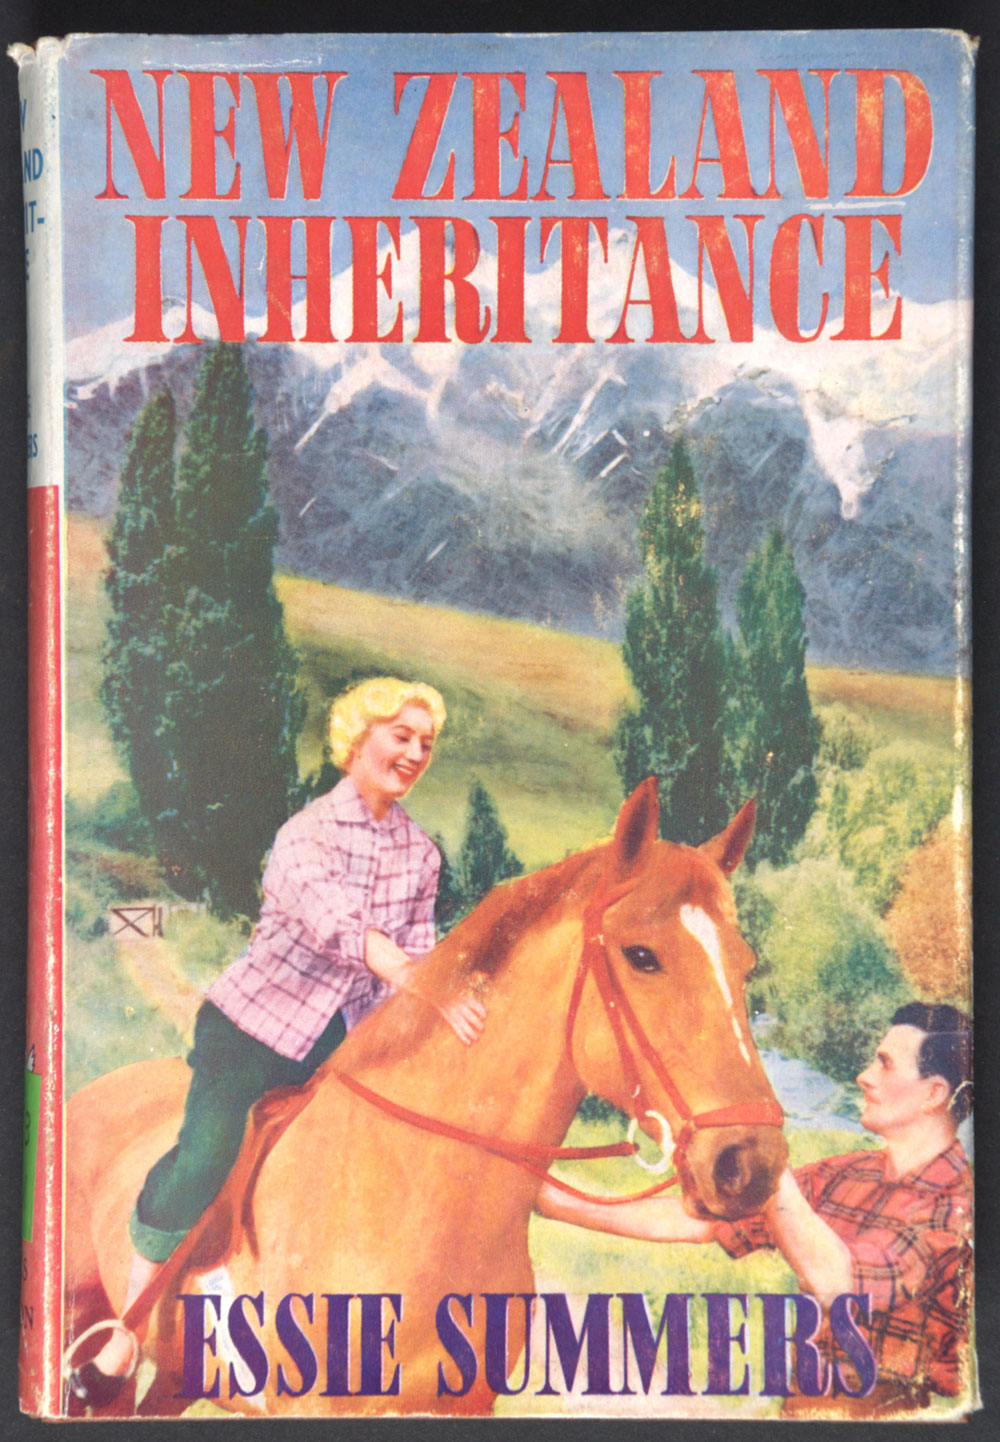 Essie Summers. <em>New Zealand inheritance</em>. London: Mills & Boon, 1957.